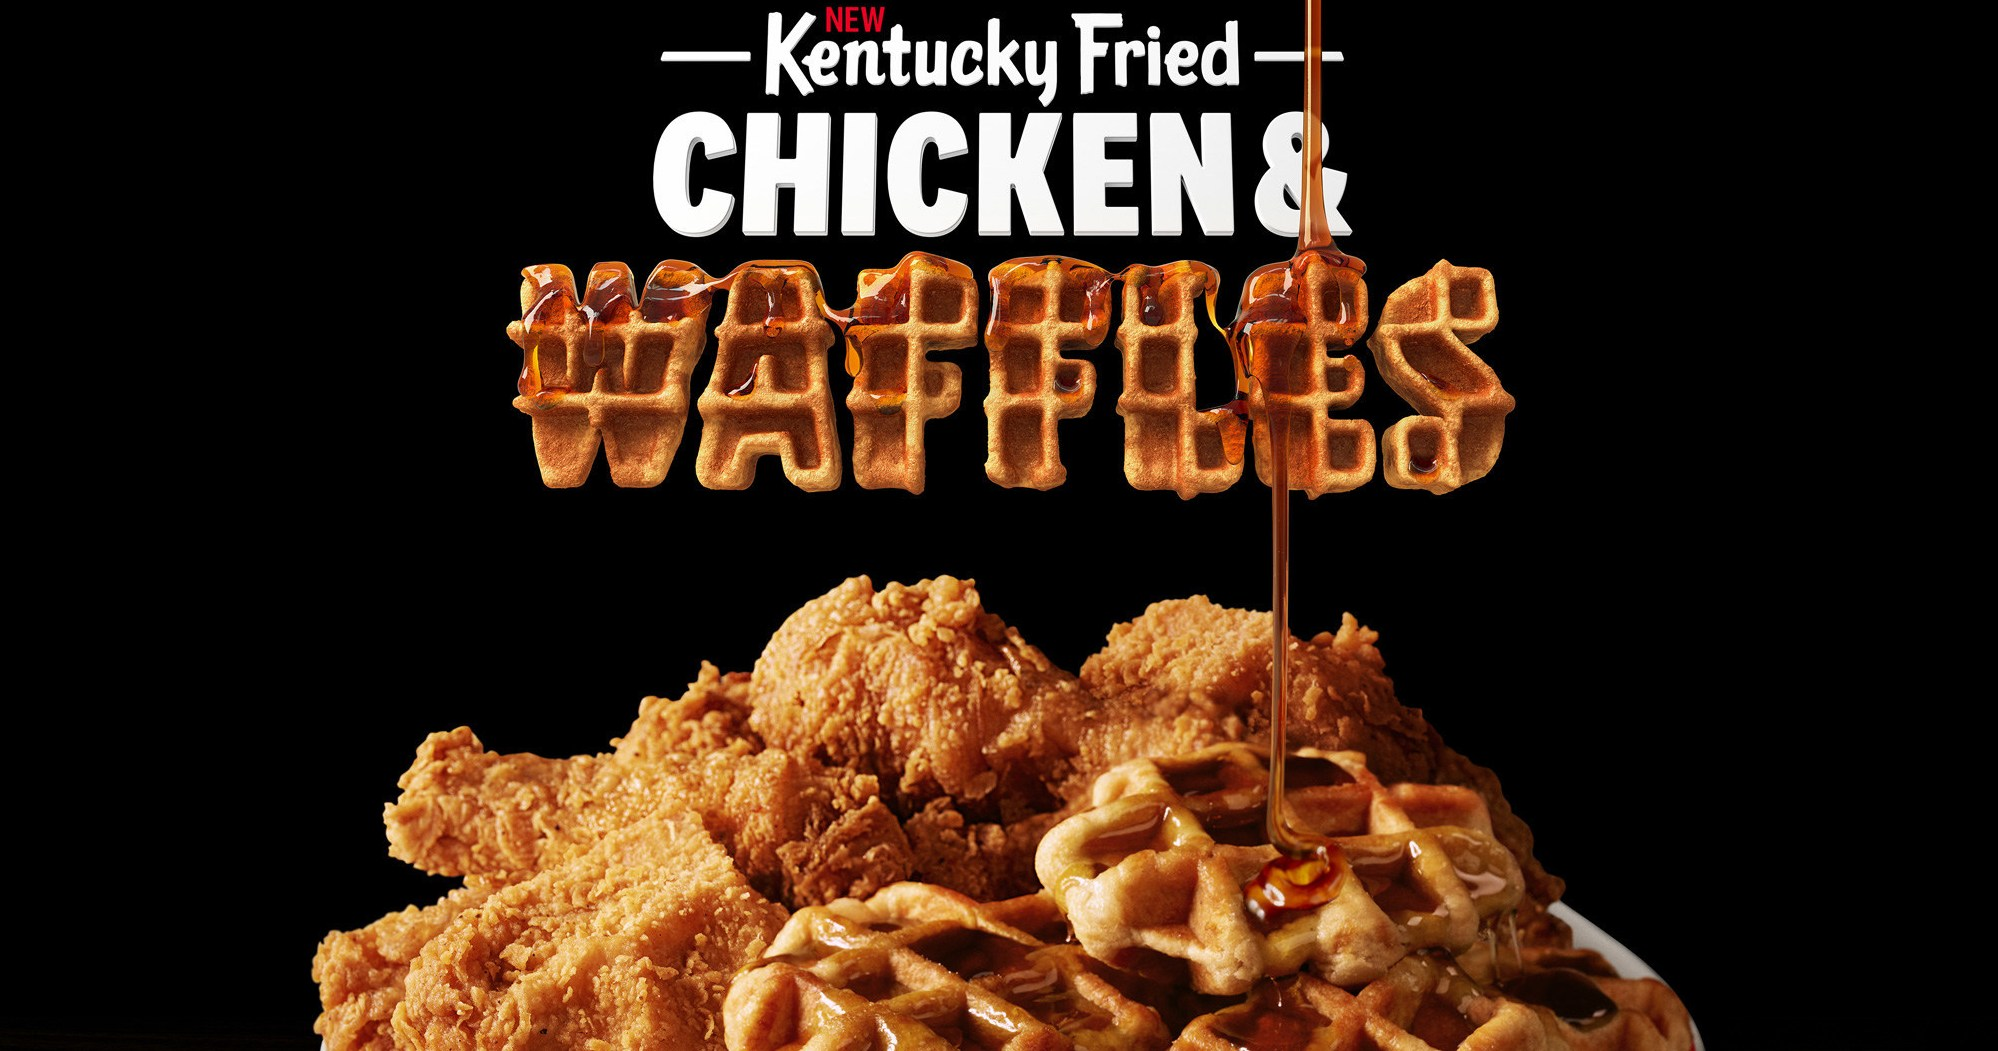 KFC Is Now Serving Chicken and Waffles, and Twitter Loves It: 'It's About Time'